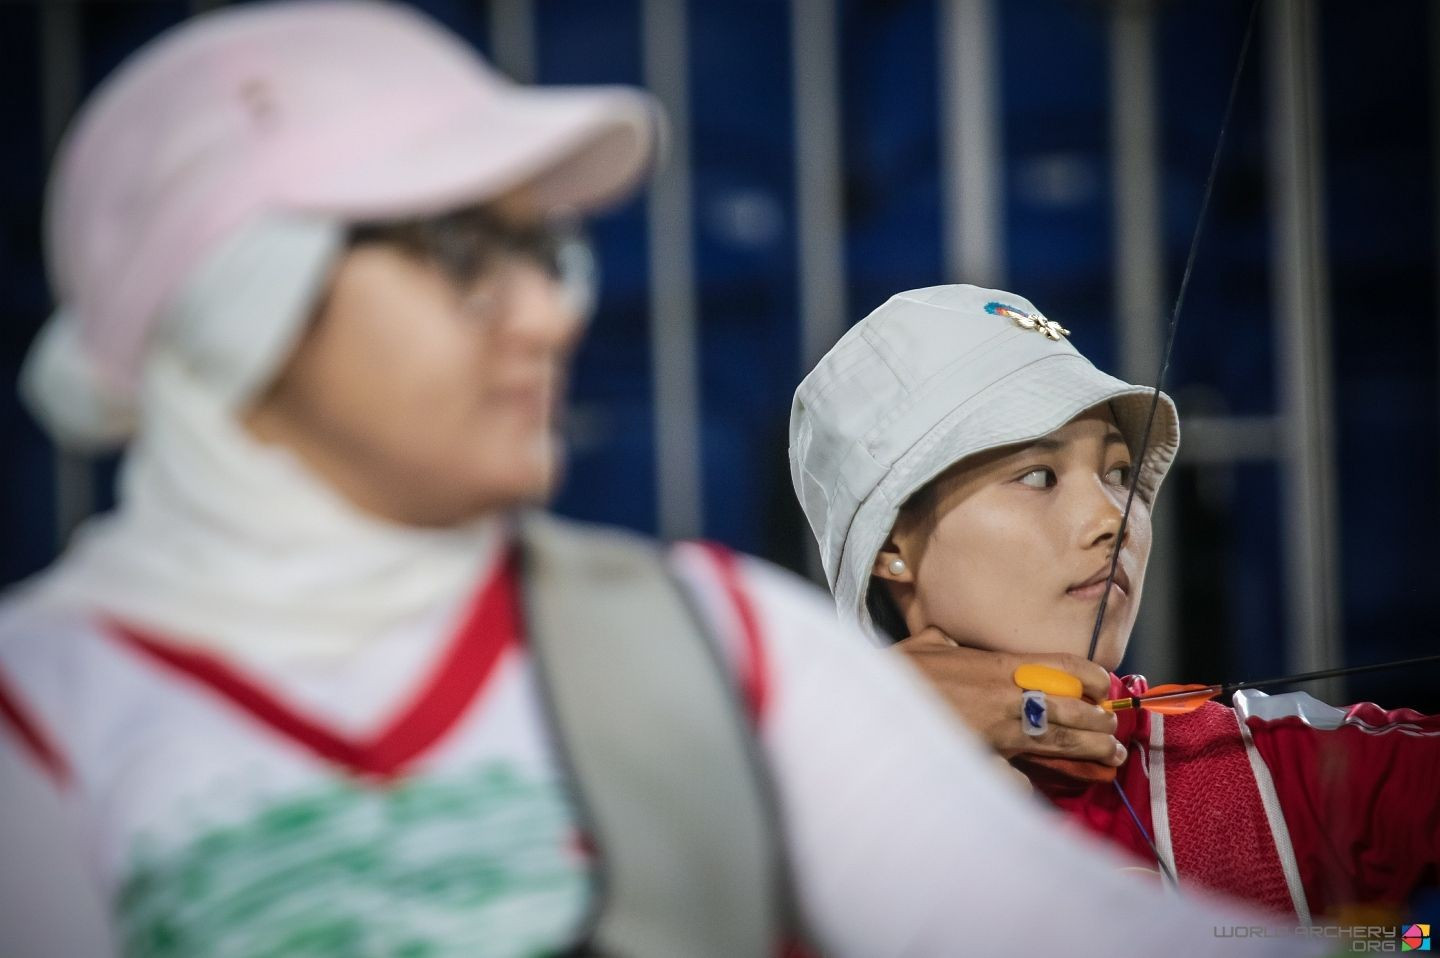 Iran's double Paralympic champion Zahra Nemati (foreground) finished ahead of defending champion Wu Chunyan in the opening ranking competition at the World Archery Para Championships in Beijing ©WorldArchery